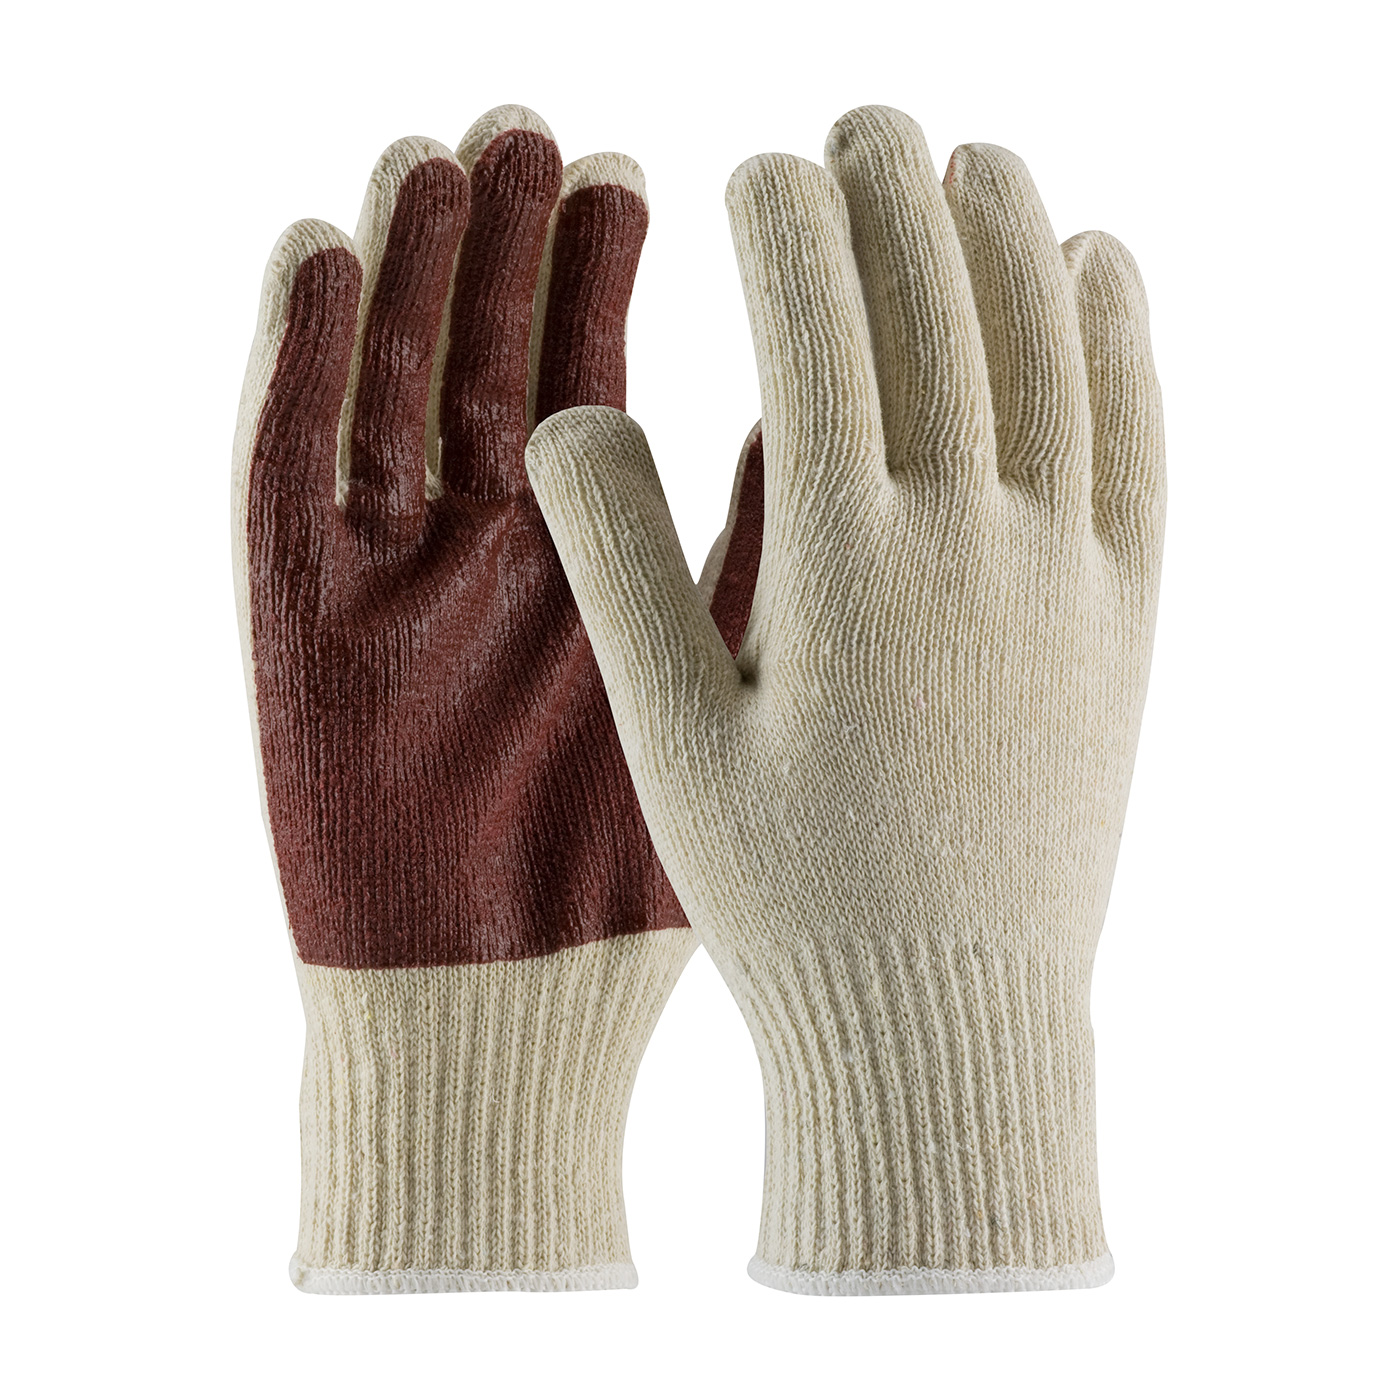 #38-N2110PC PIP® Cotton/Poly Nitrile Coated Glove